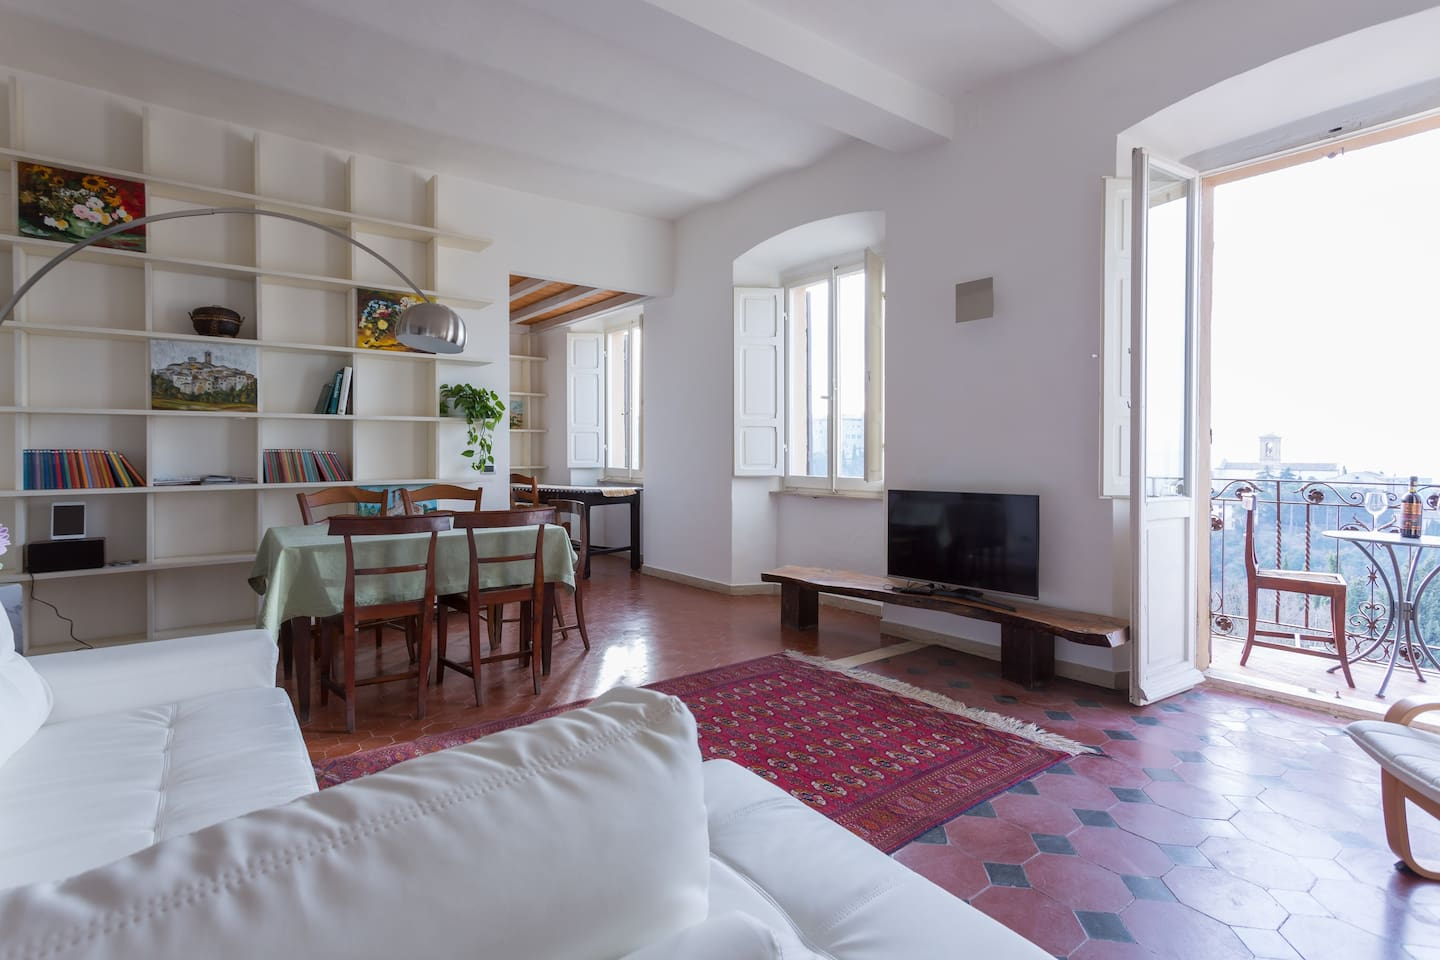 Large flat with view - Perugia historic centre